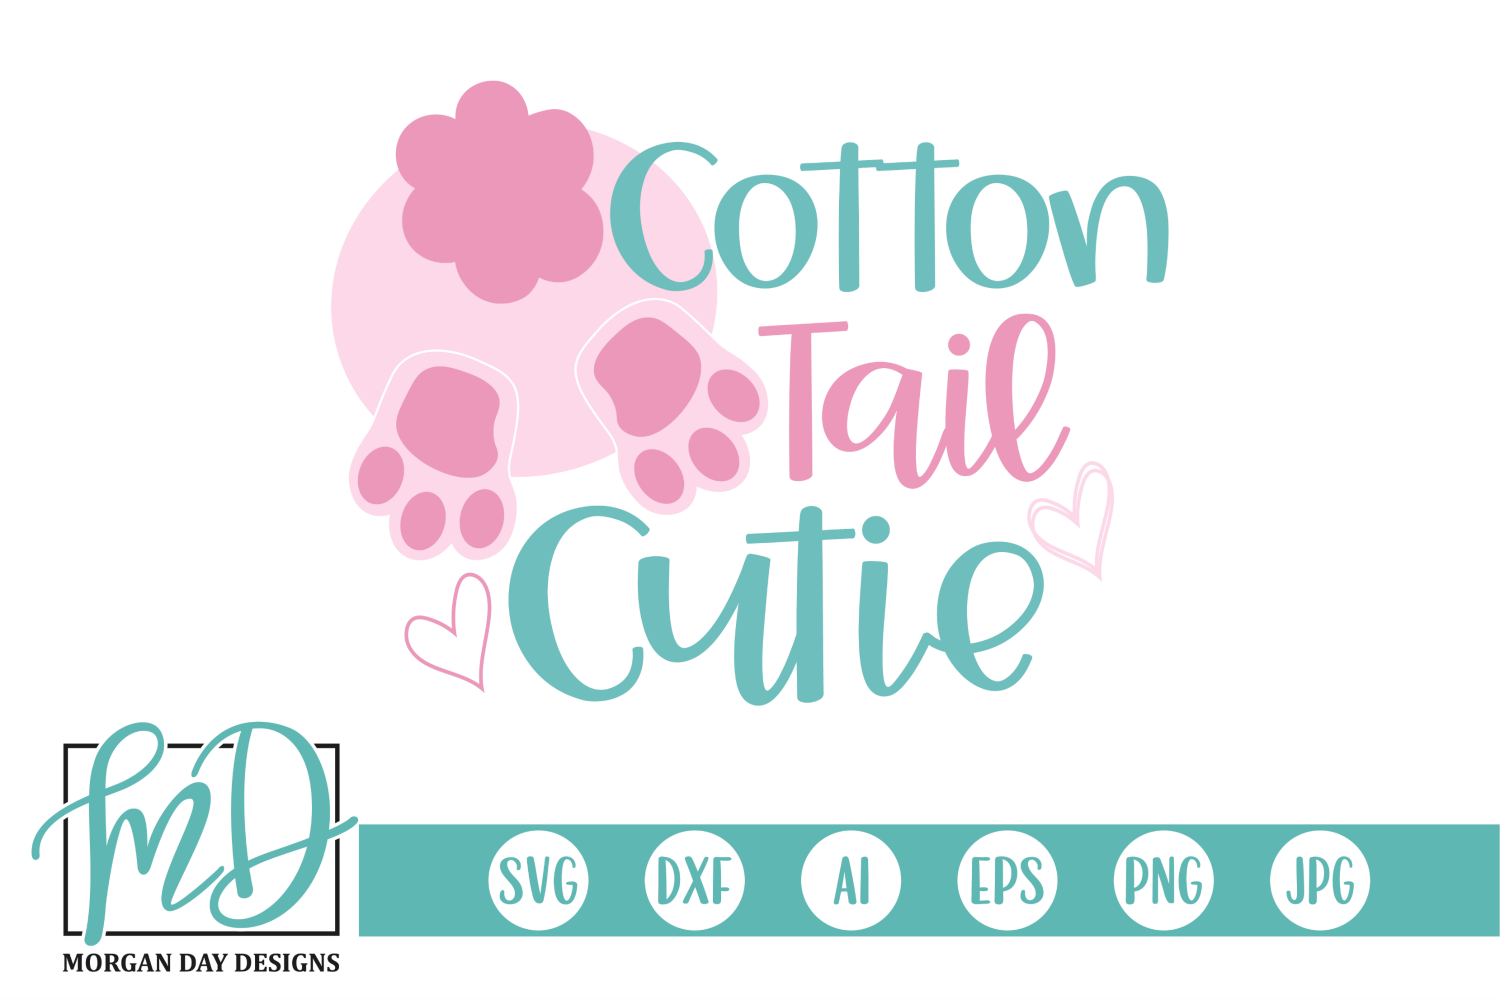 Download Free Cotton Tail Cutie Graphic By Morgan Day Designs Creative Fabrica for Cricut Explore, Silhouette and other cutting machines.